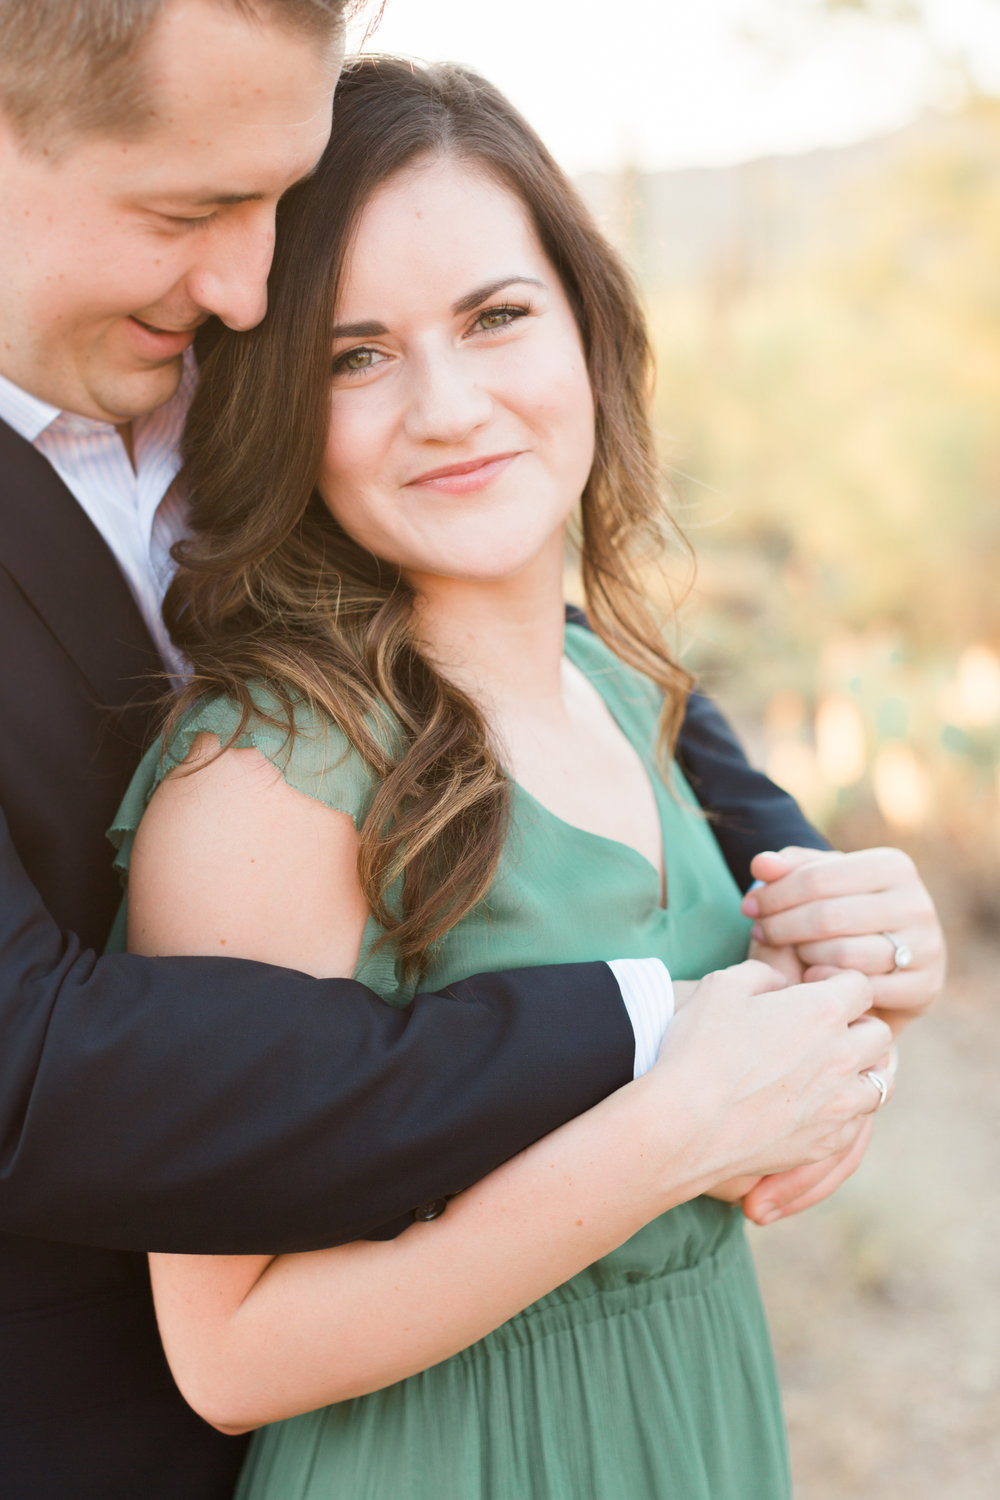 This girl looks so happy to be marrying the man of her dreams. Love the way he's hugging her.